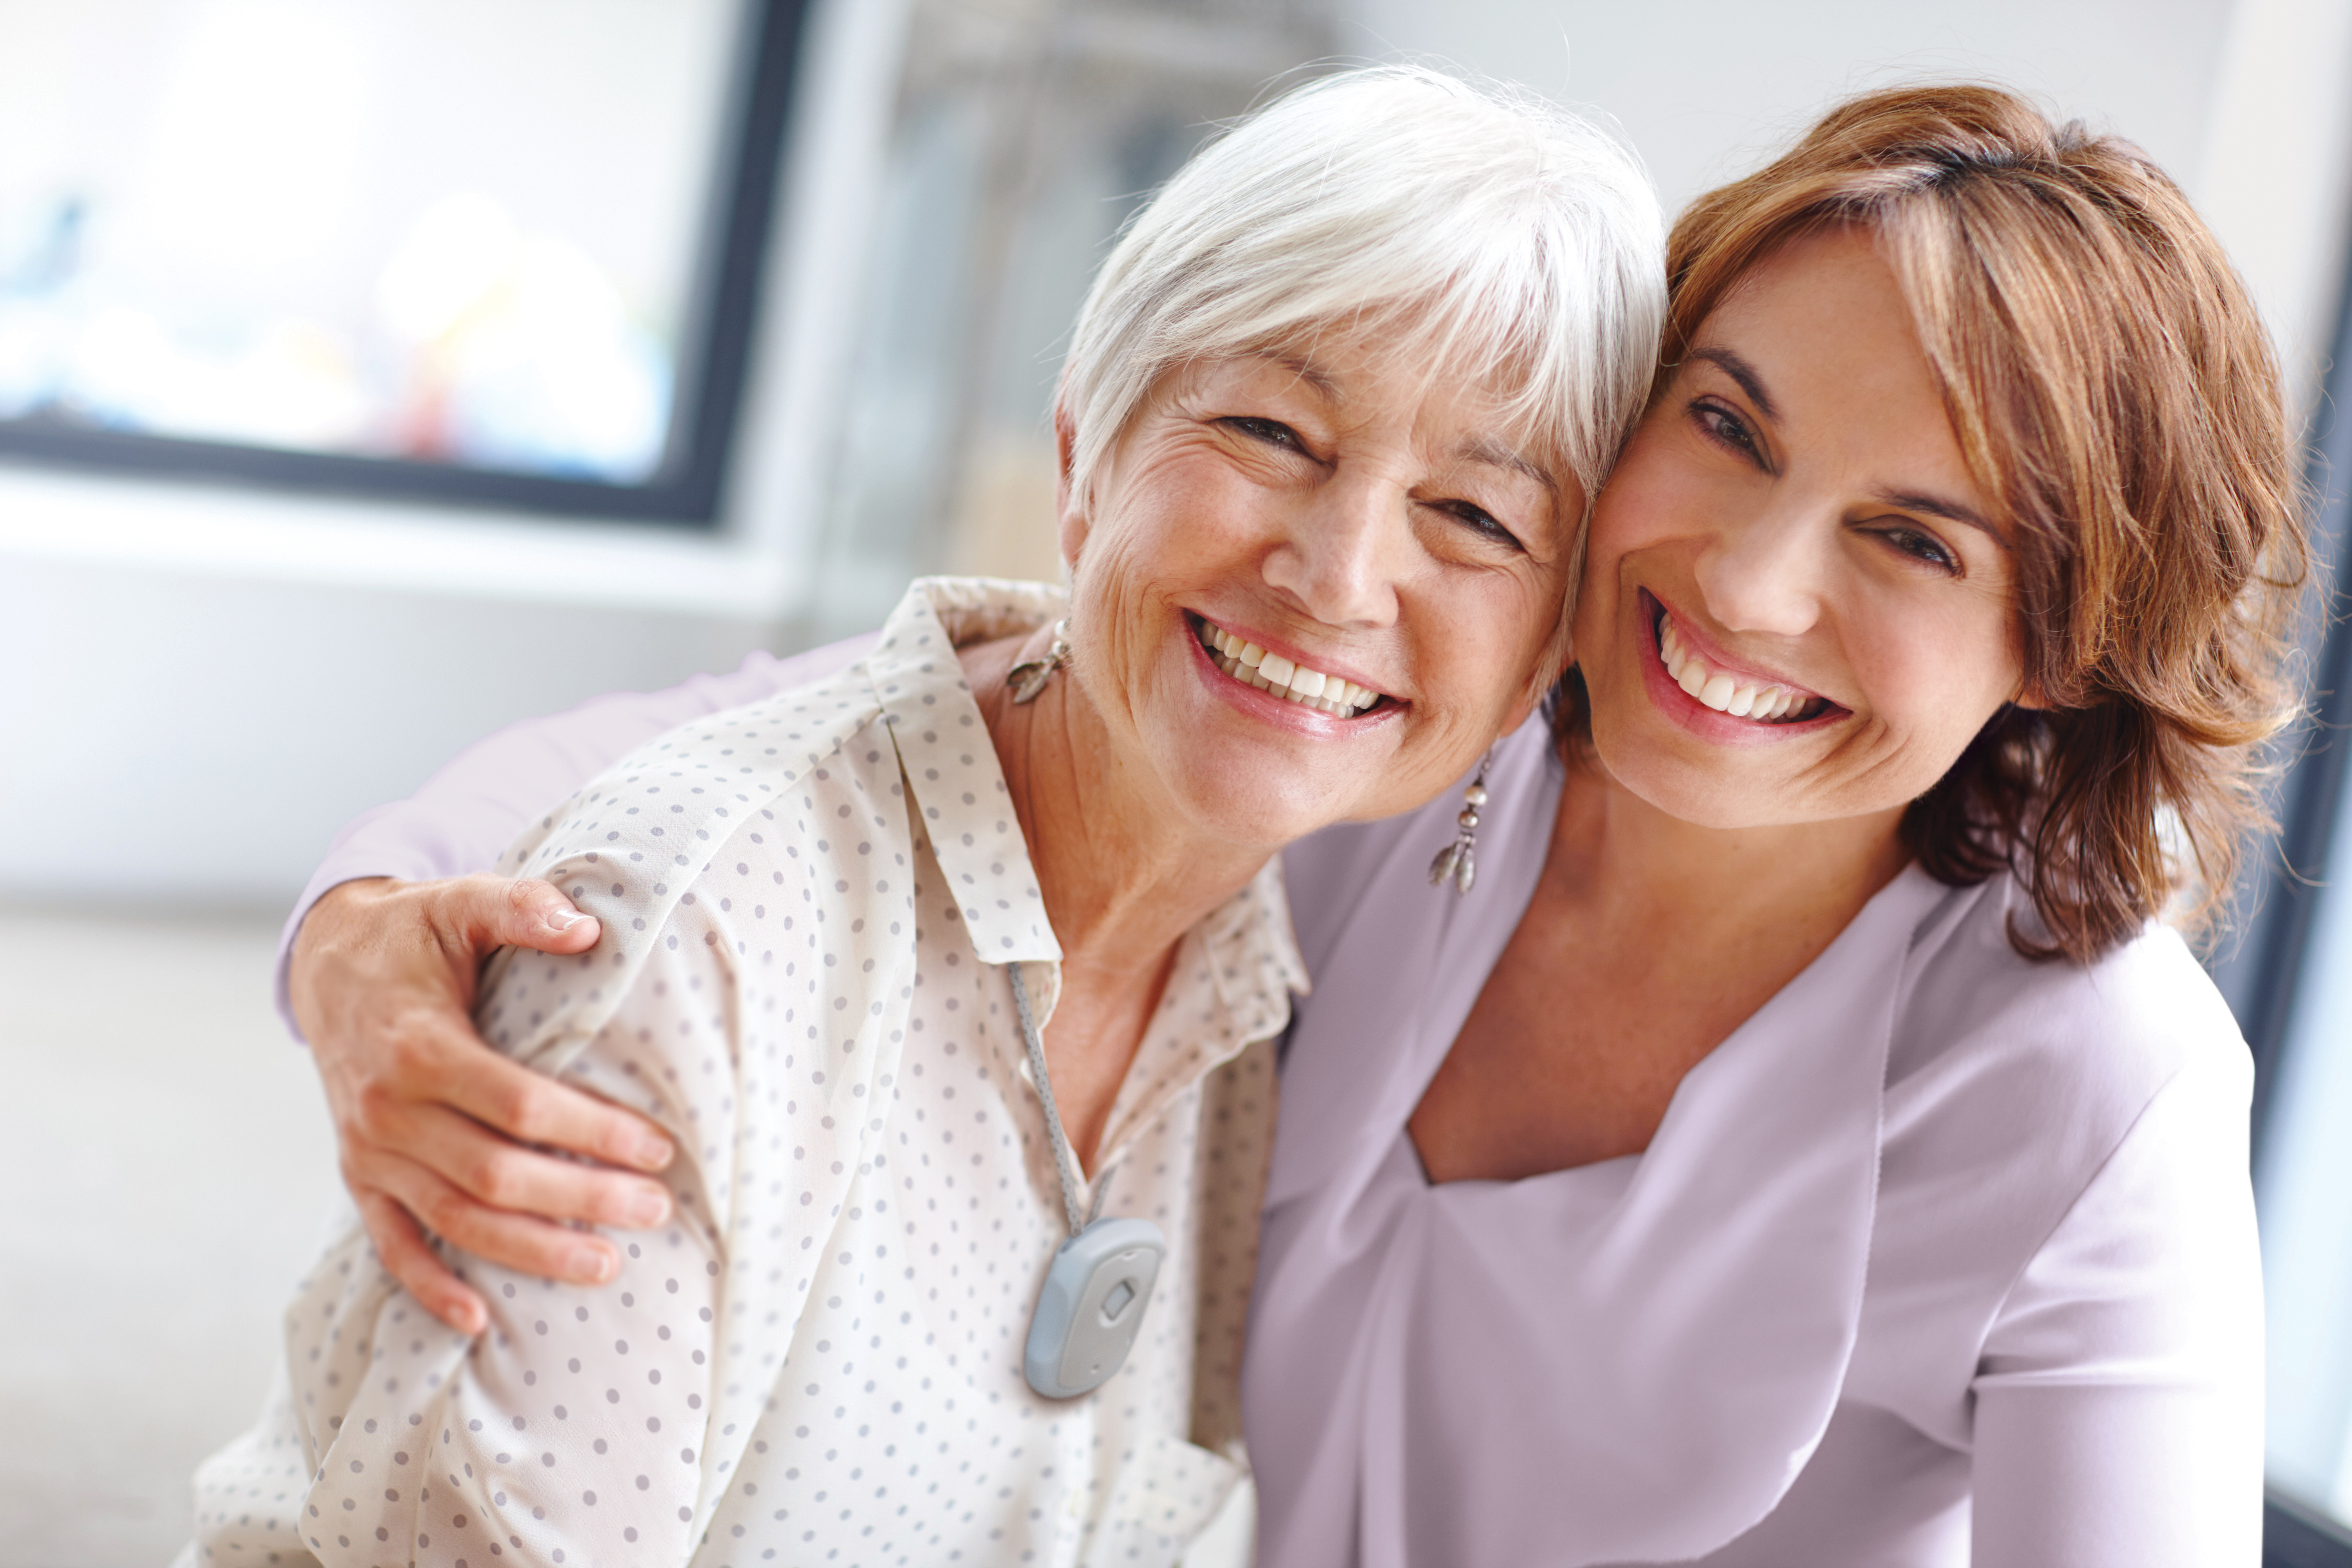 TELUS Health announces national expansion of LivingWell Companion personal medical alert services to support aging Canadians